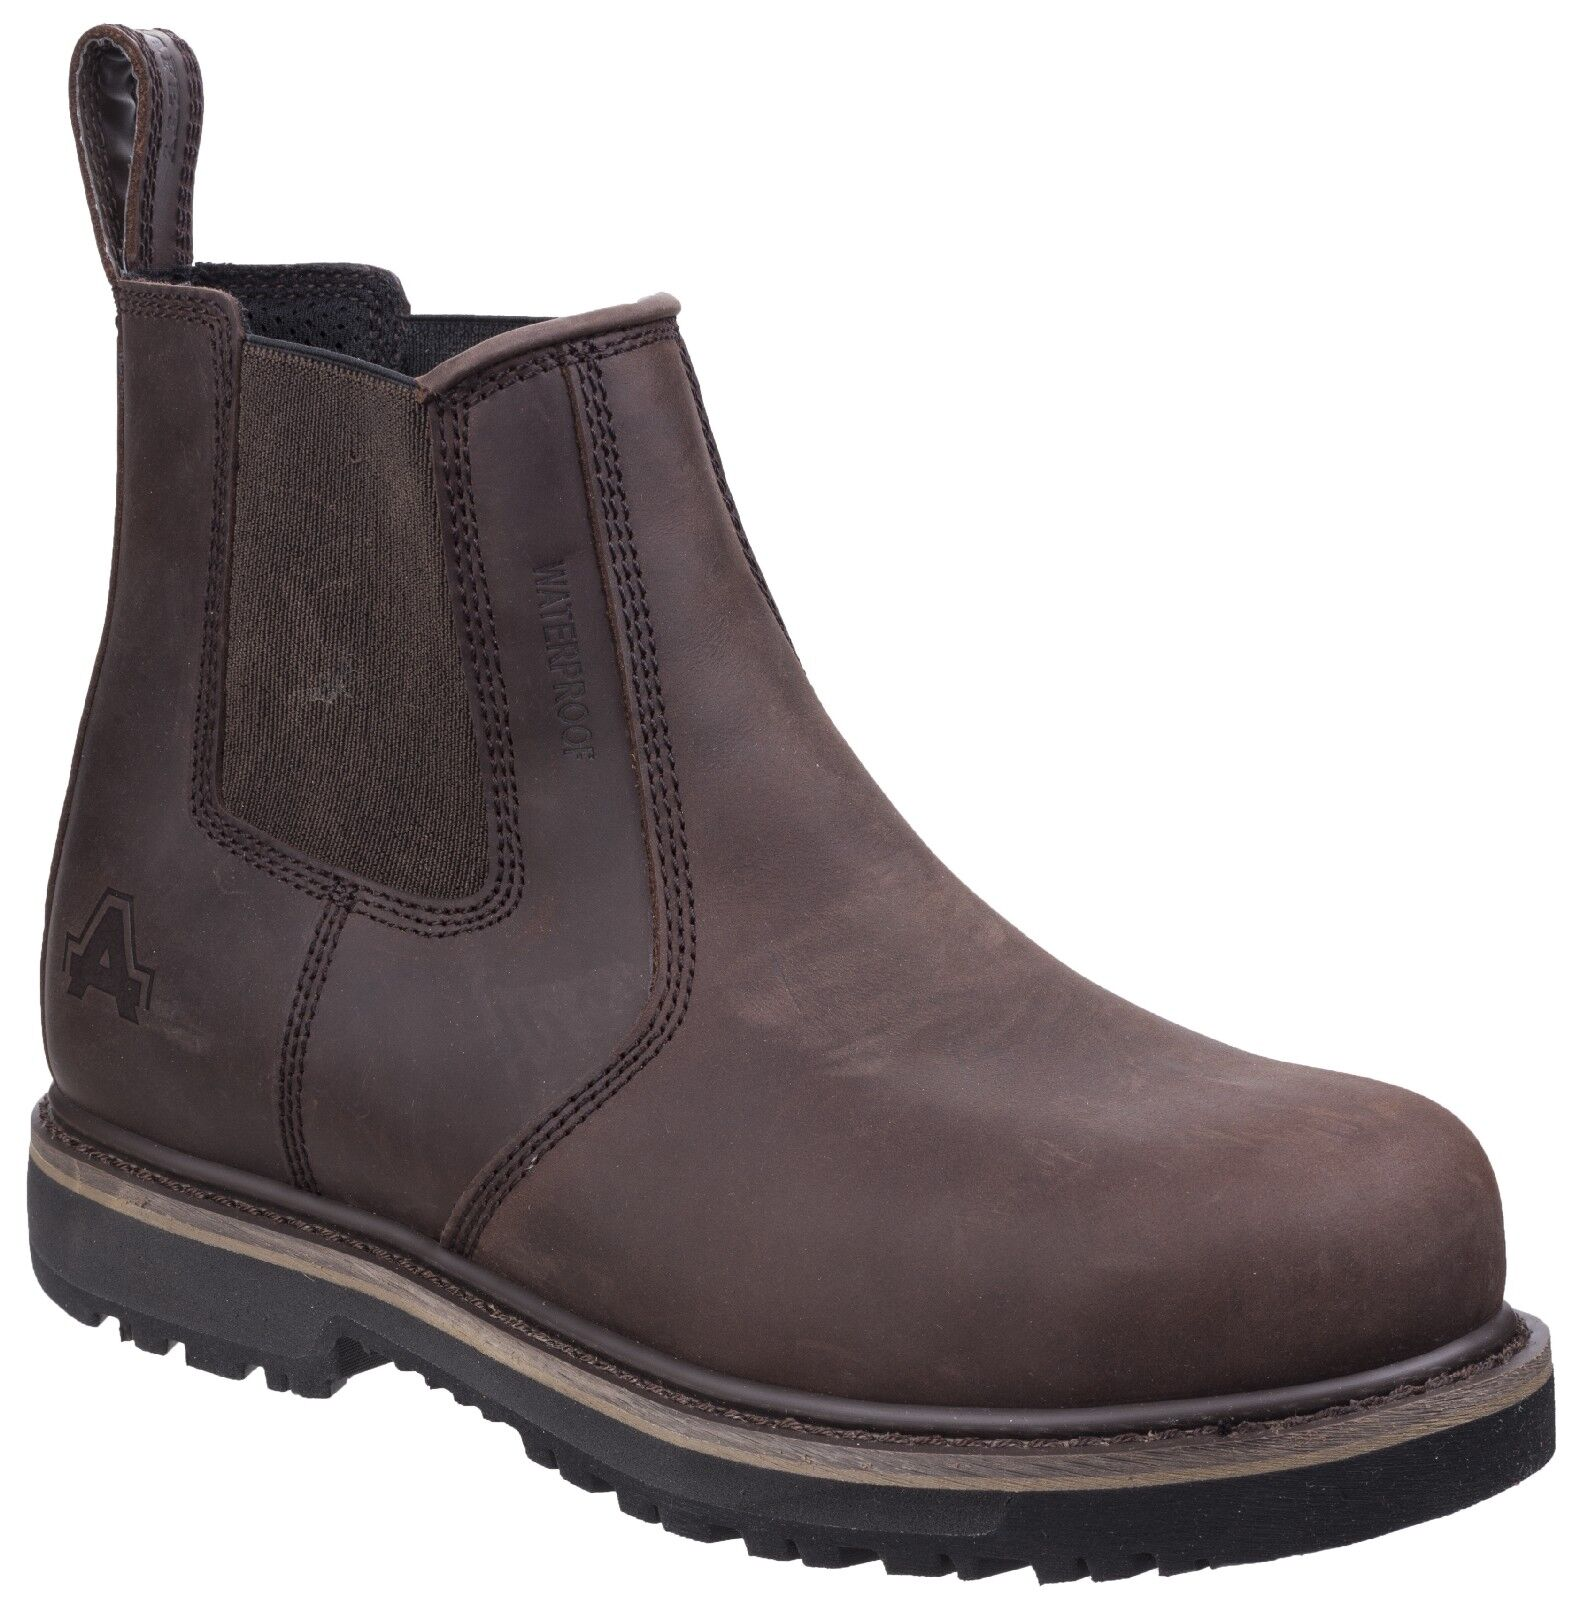 Amblers Skipton Brown Safety Dealer Work Boots Goodyear Welted AS231 6-12